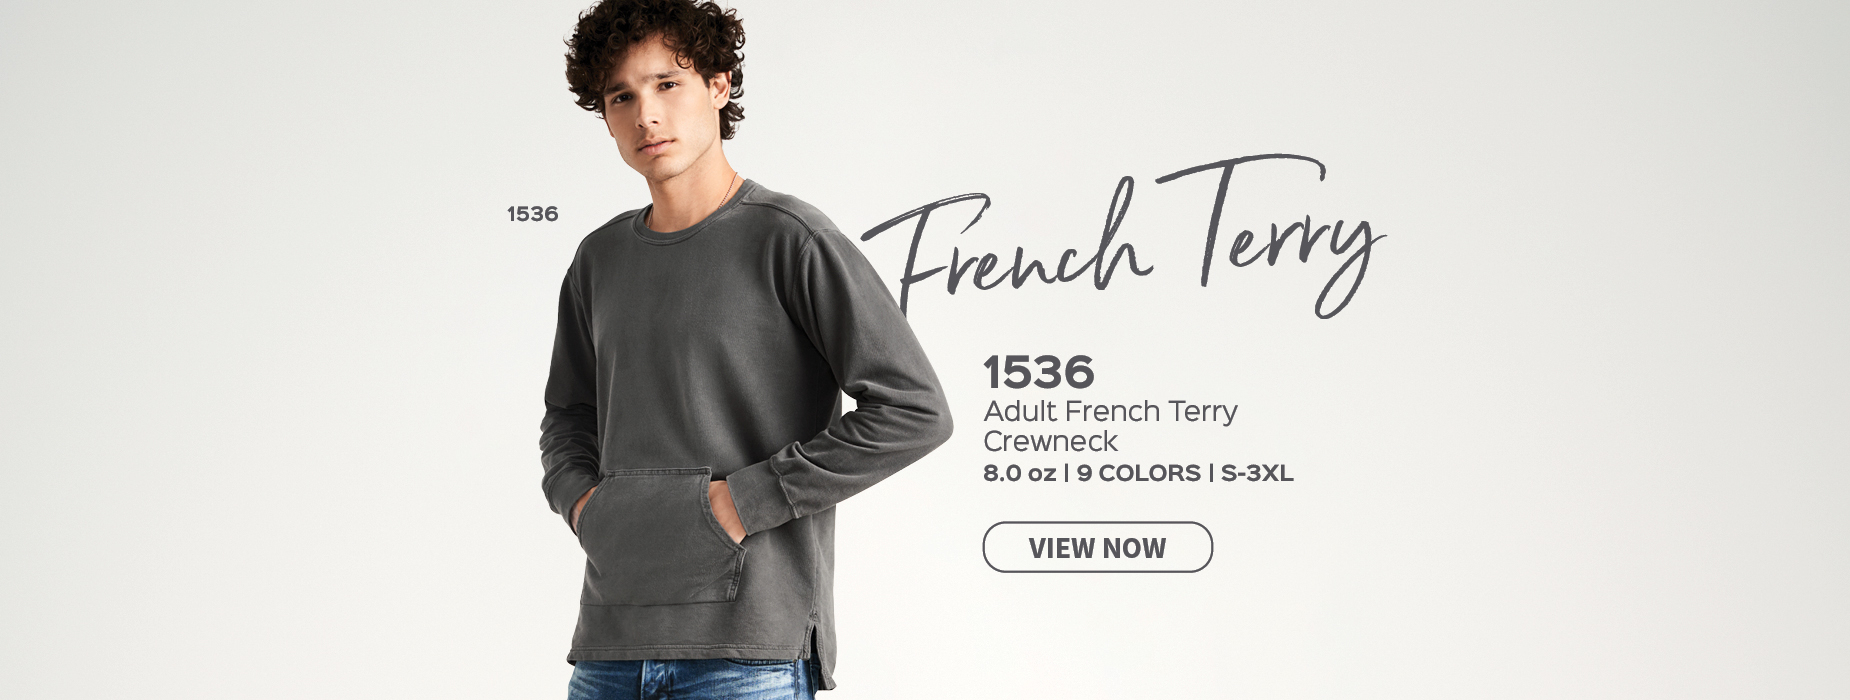 View Adult French Terry Crew